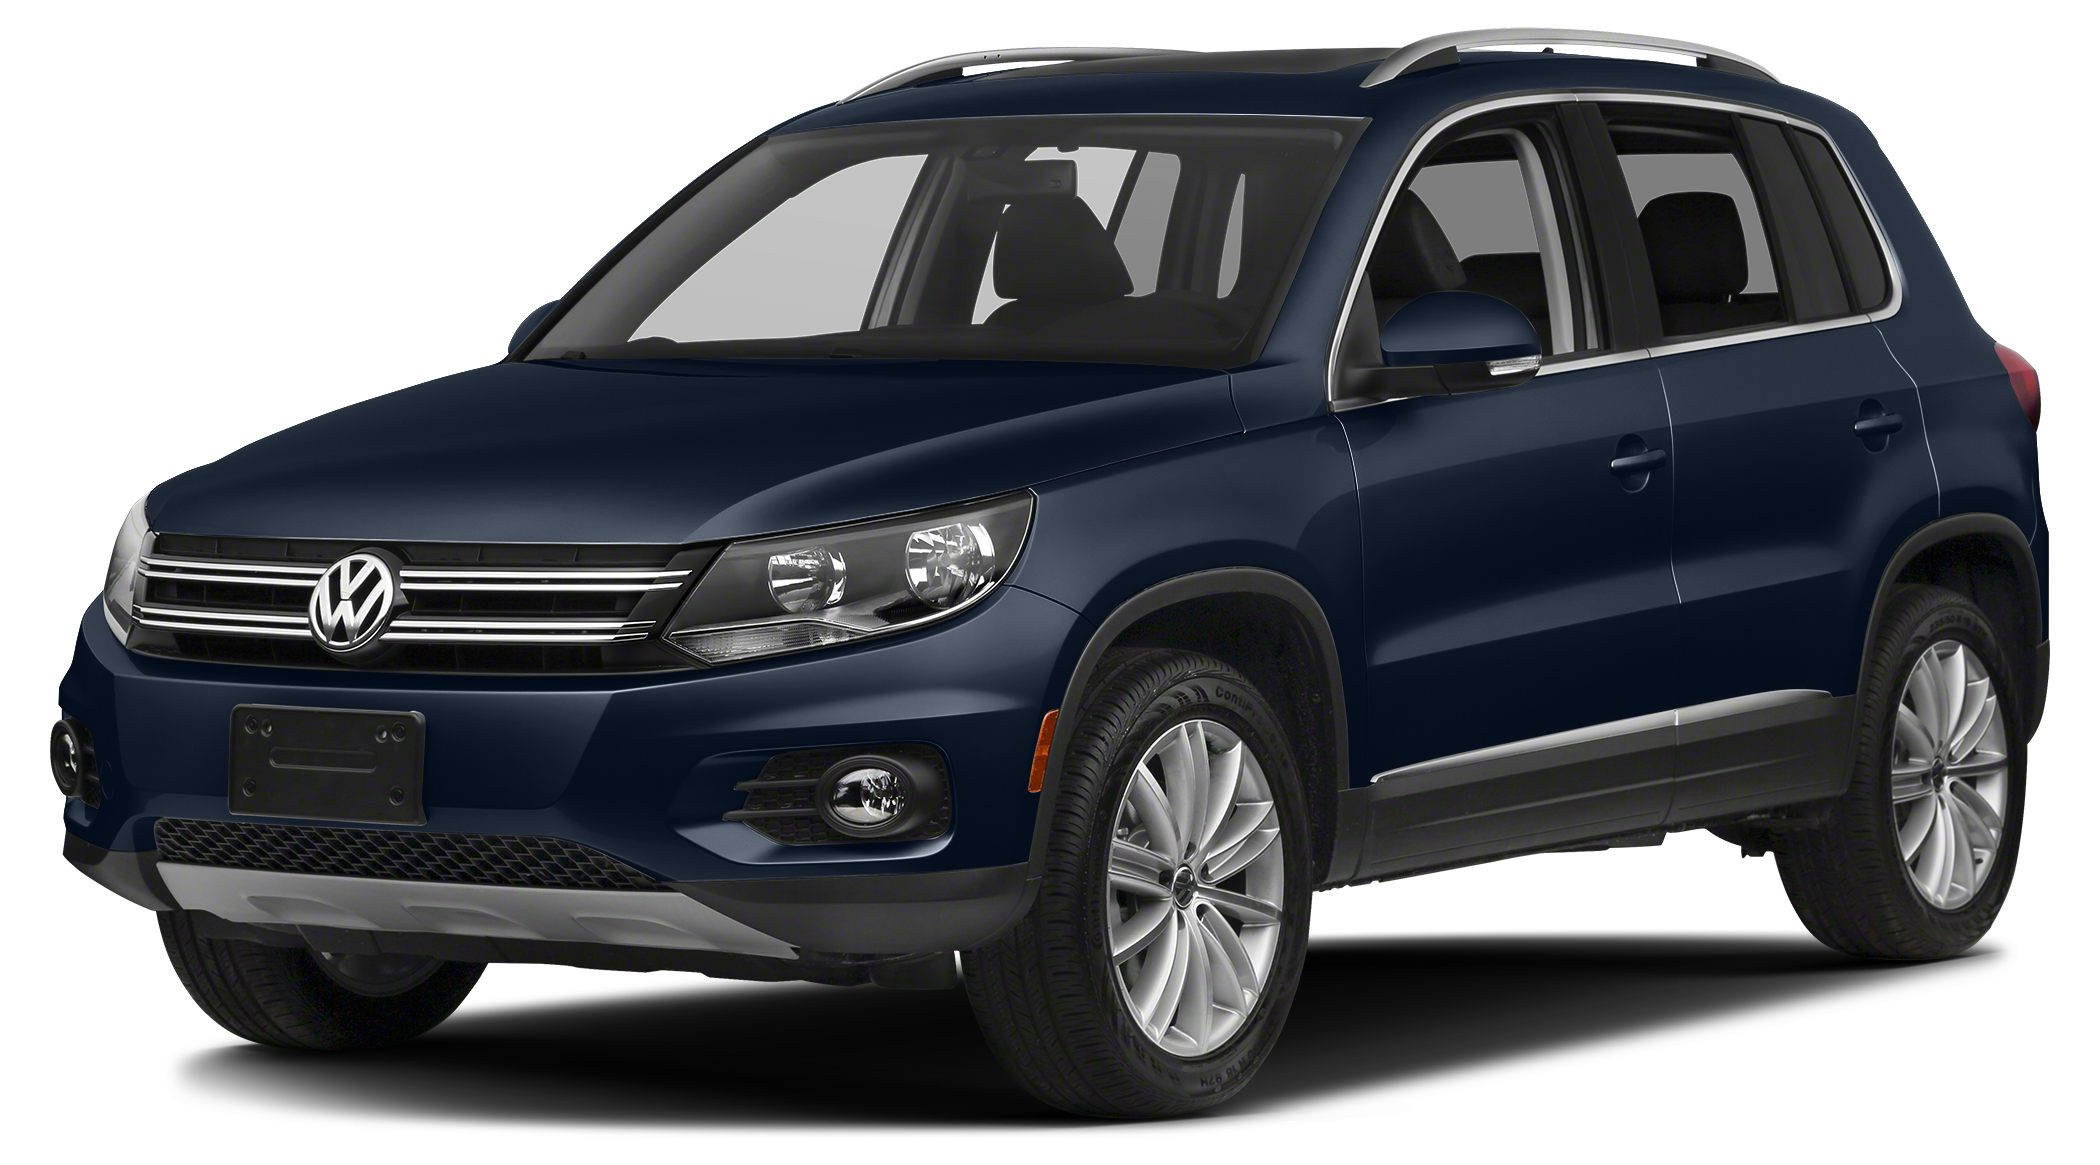 2015 Volkswagen Tiguan SE CARFAX One-Owner - Clean CARFAX - AWD - Backup Camera - Bluetooth - Allo